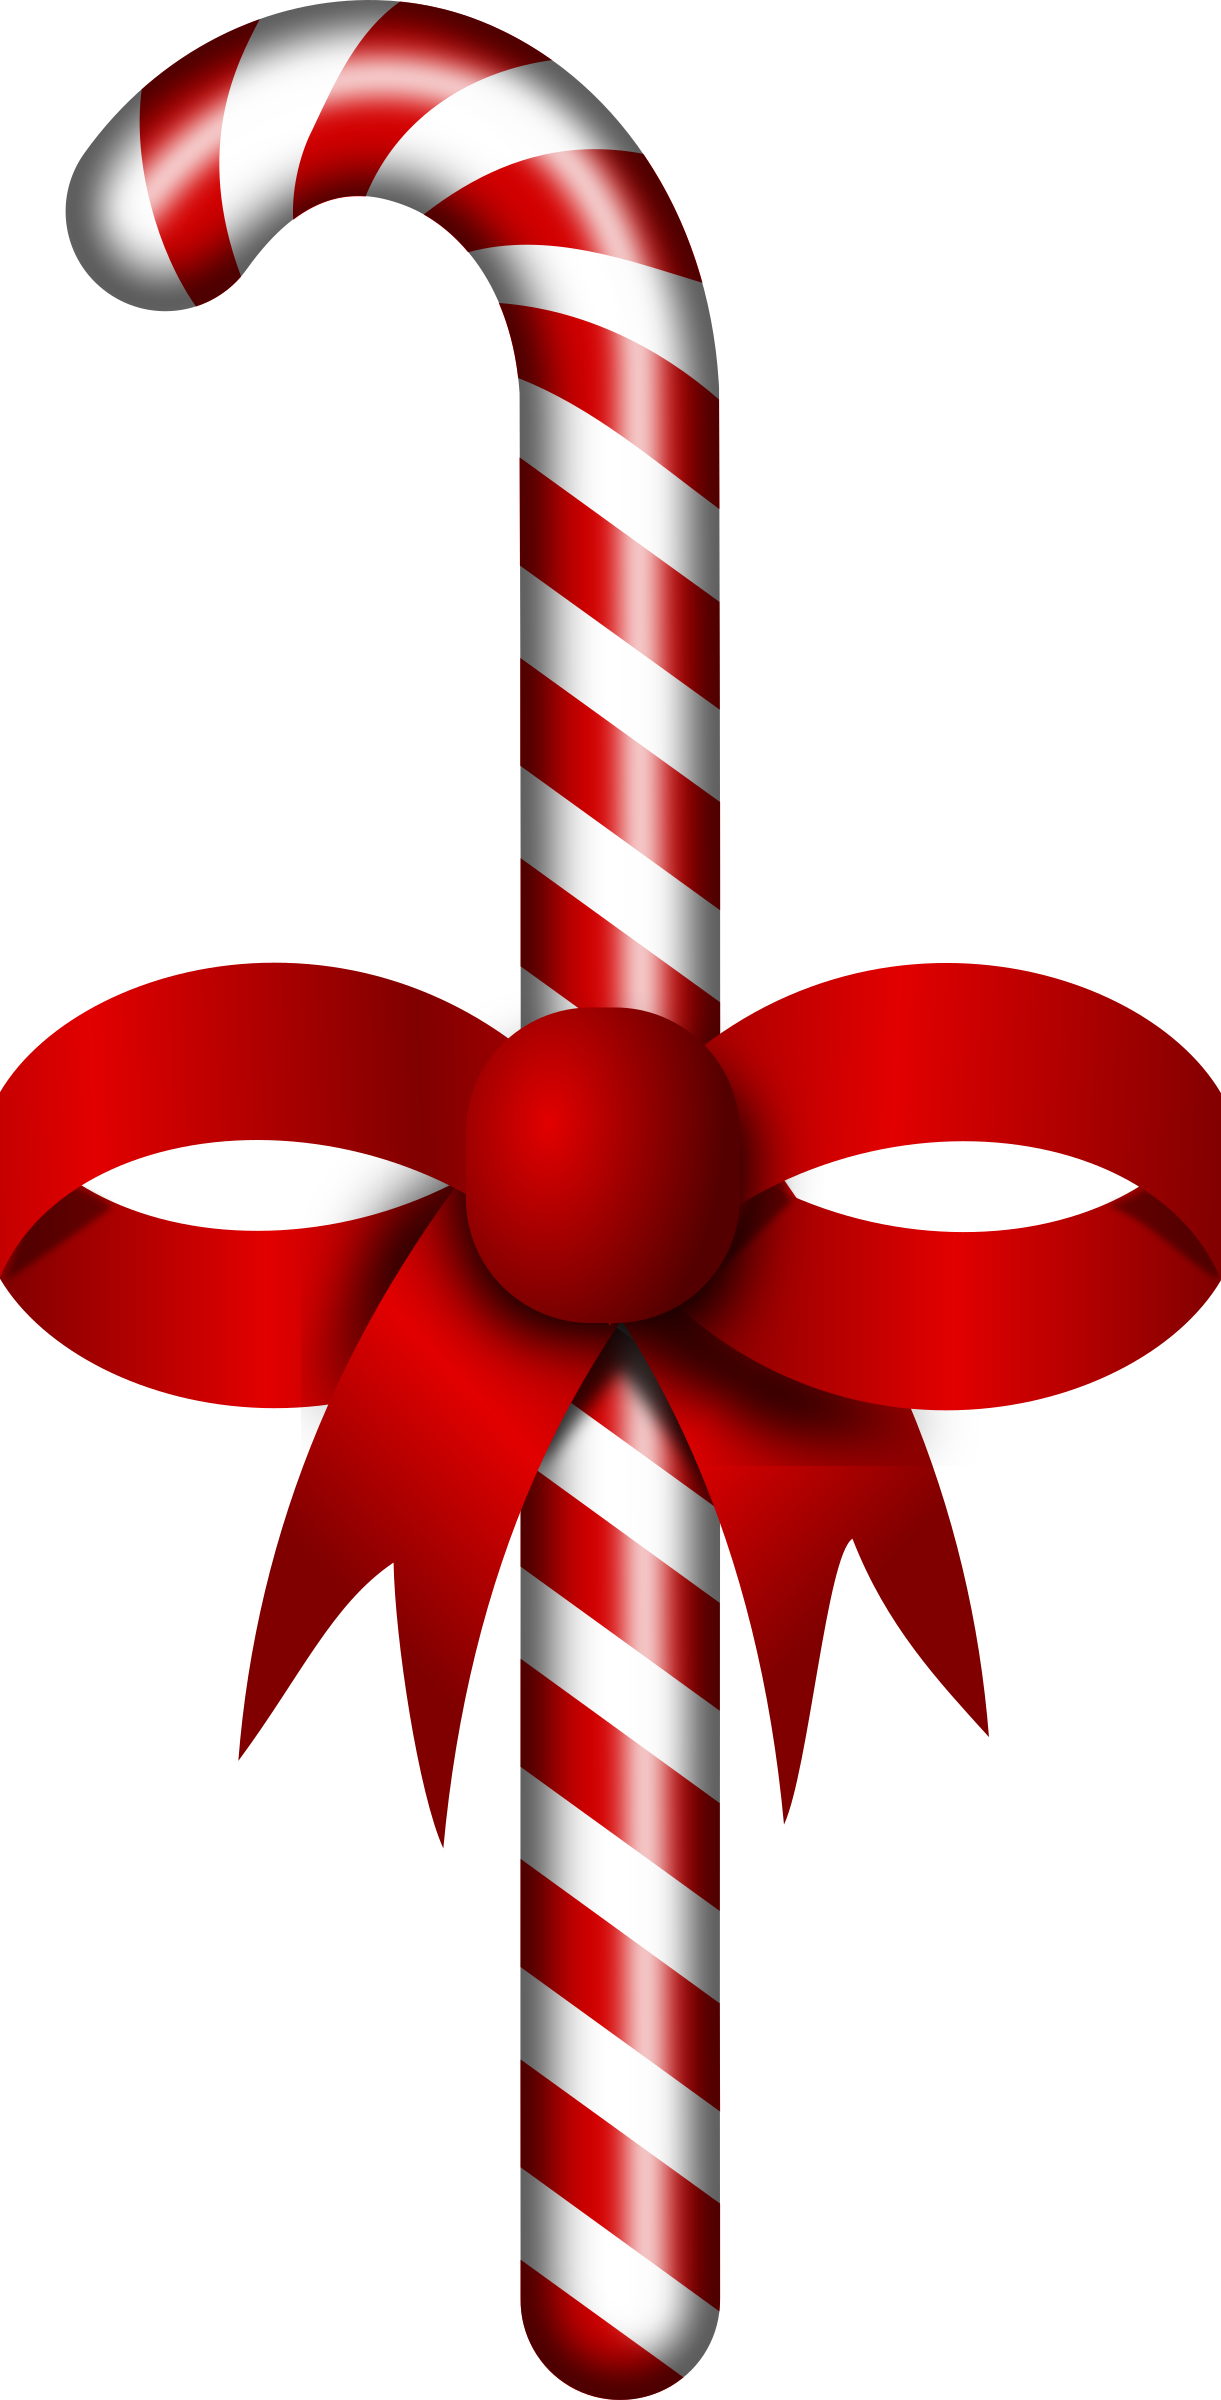 Christmas kiss clipart picture transparent stock free clipart: candystick by Chrisdesign | Cards - Christmas Elements ... picture transparent stock